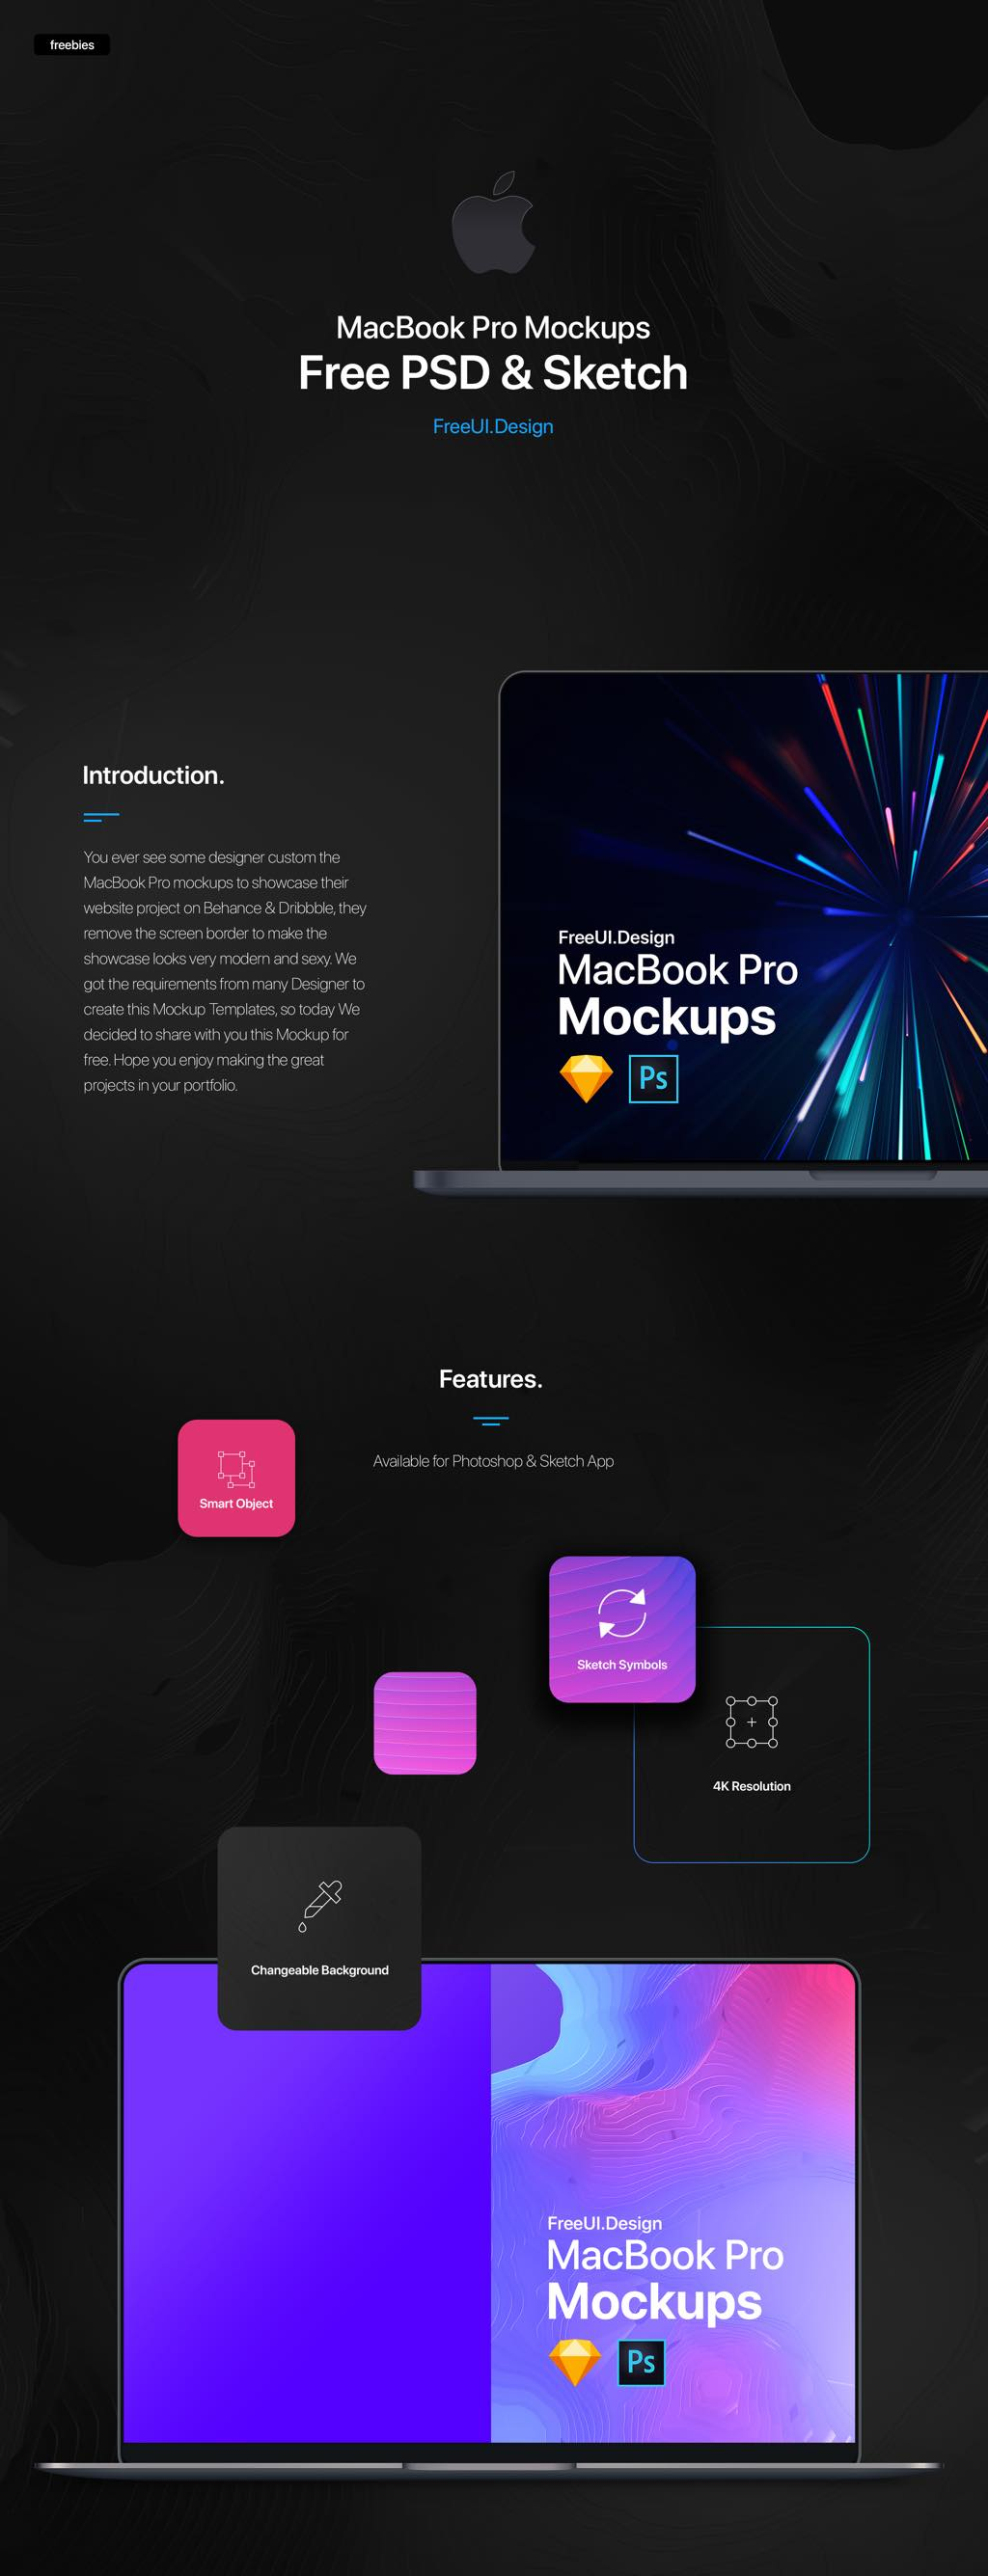 The New MacBook Pro Mockup | Photoshop + Sketch